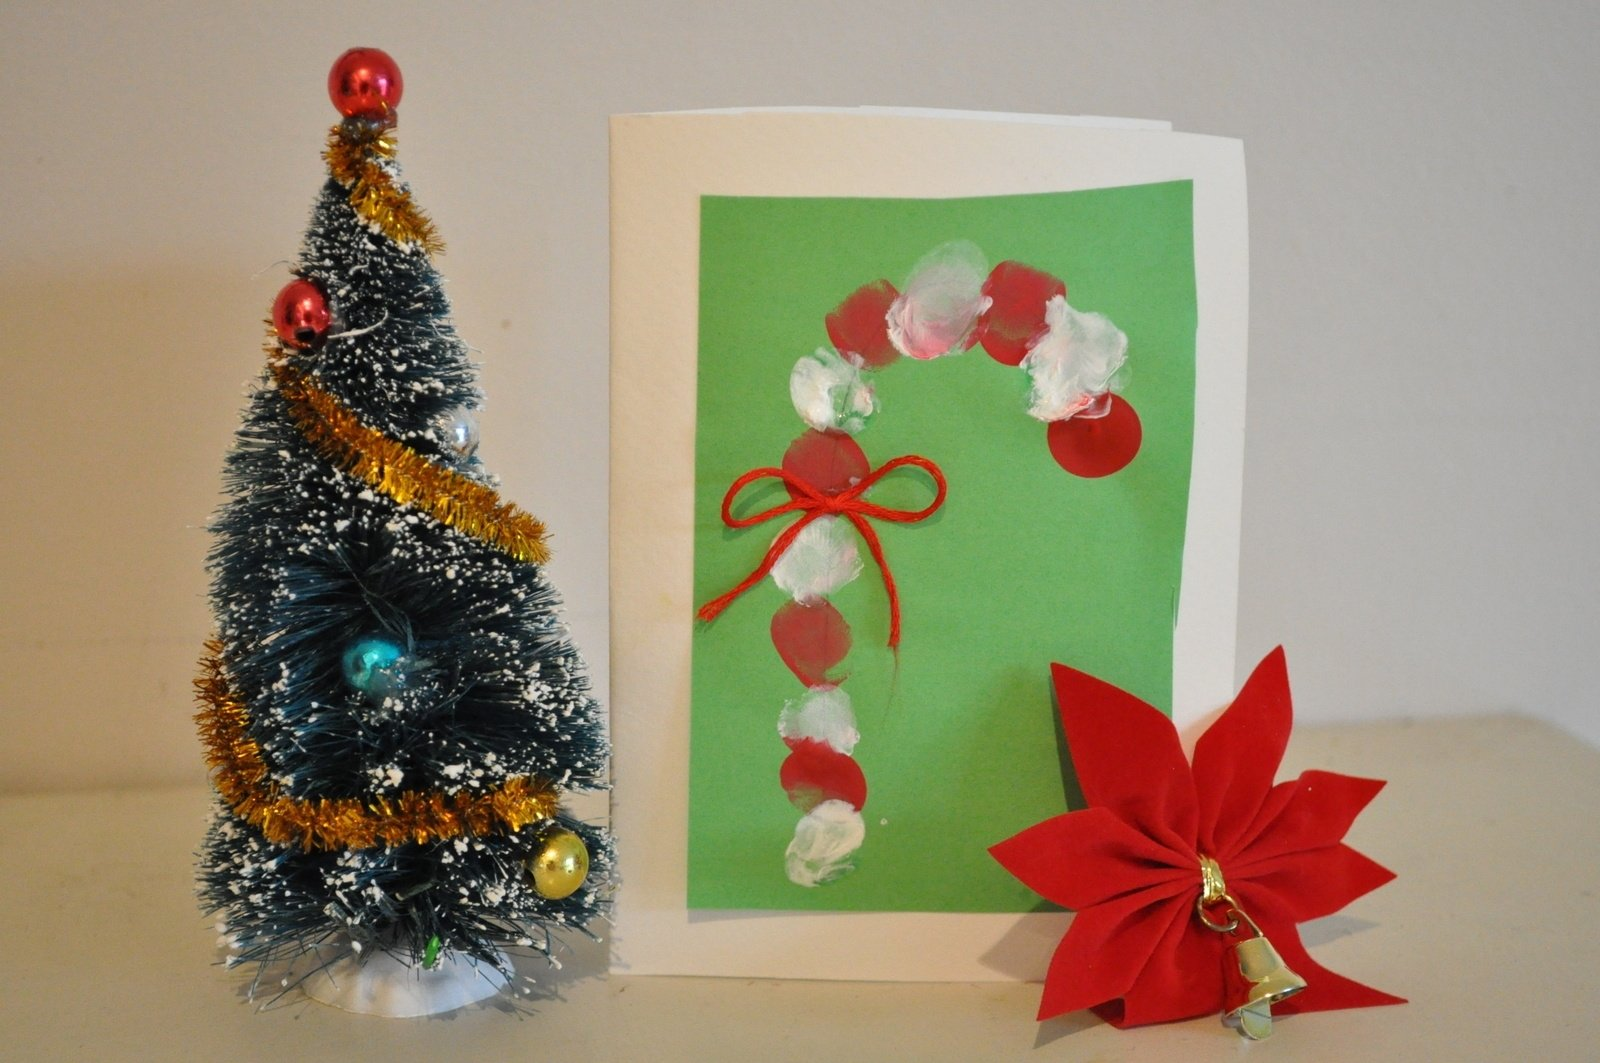 10 Fashionable Christmas Card Picture Ideas Kids homemade christmas card ideas to do with kids e280a2 brisbane kids 8 2020